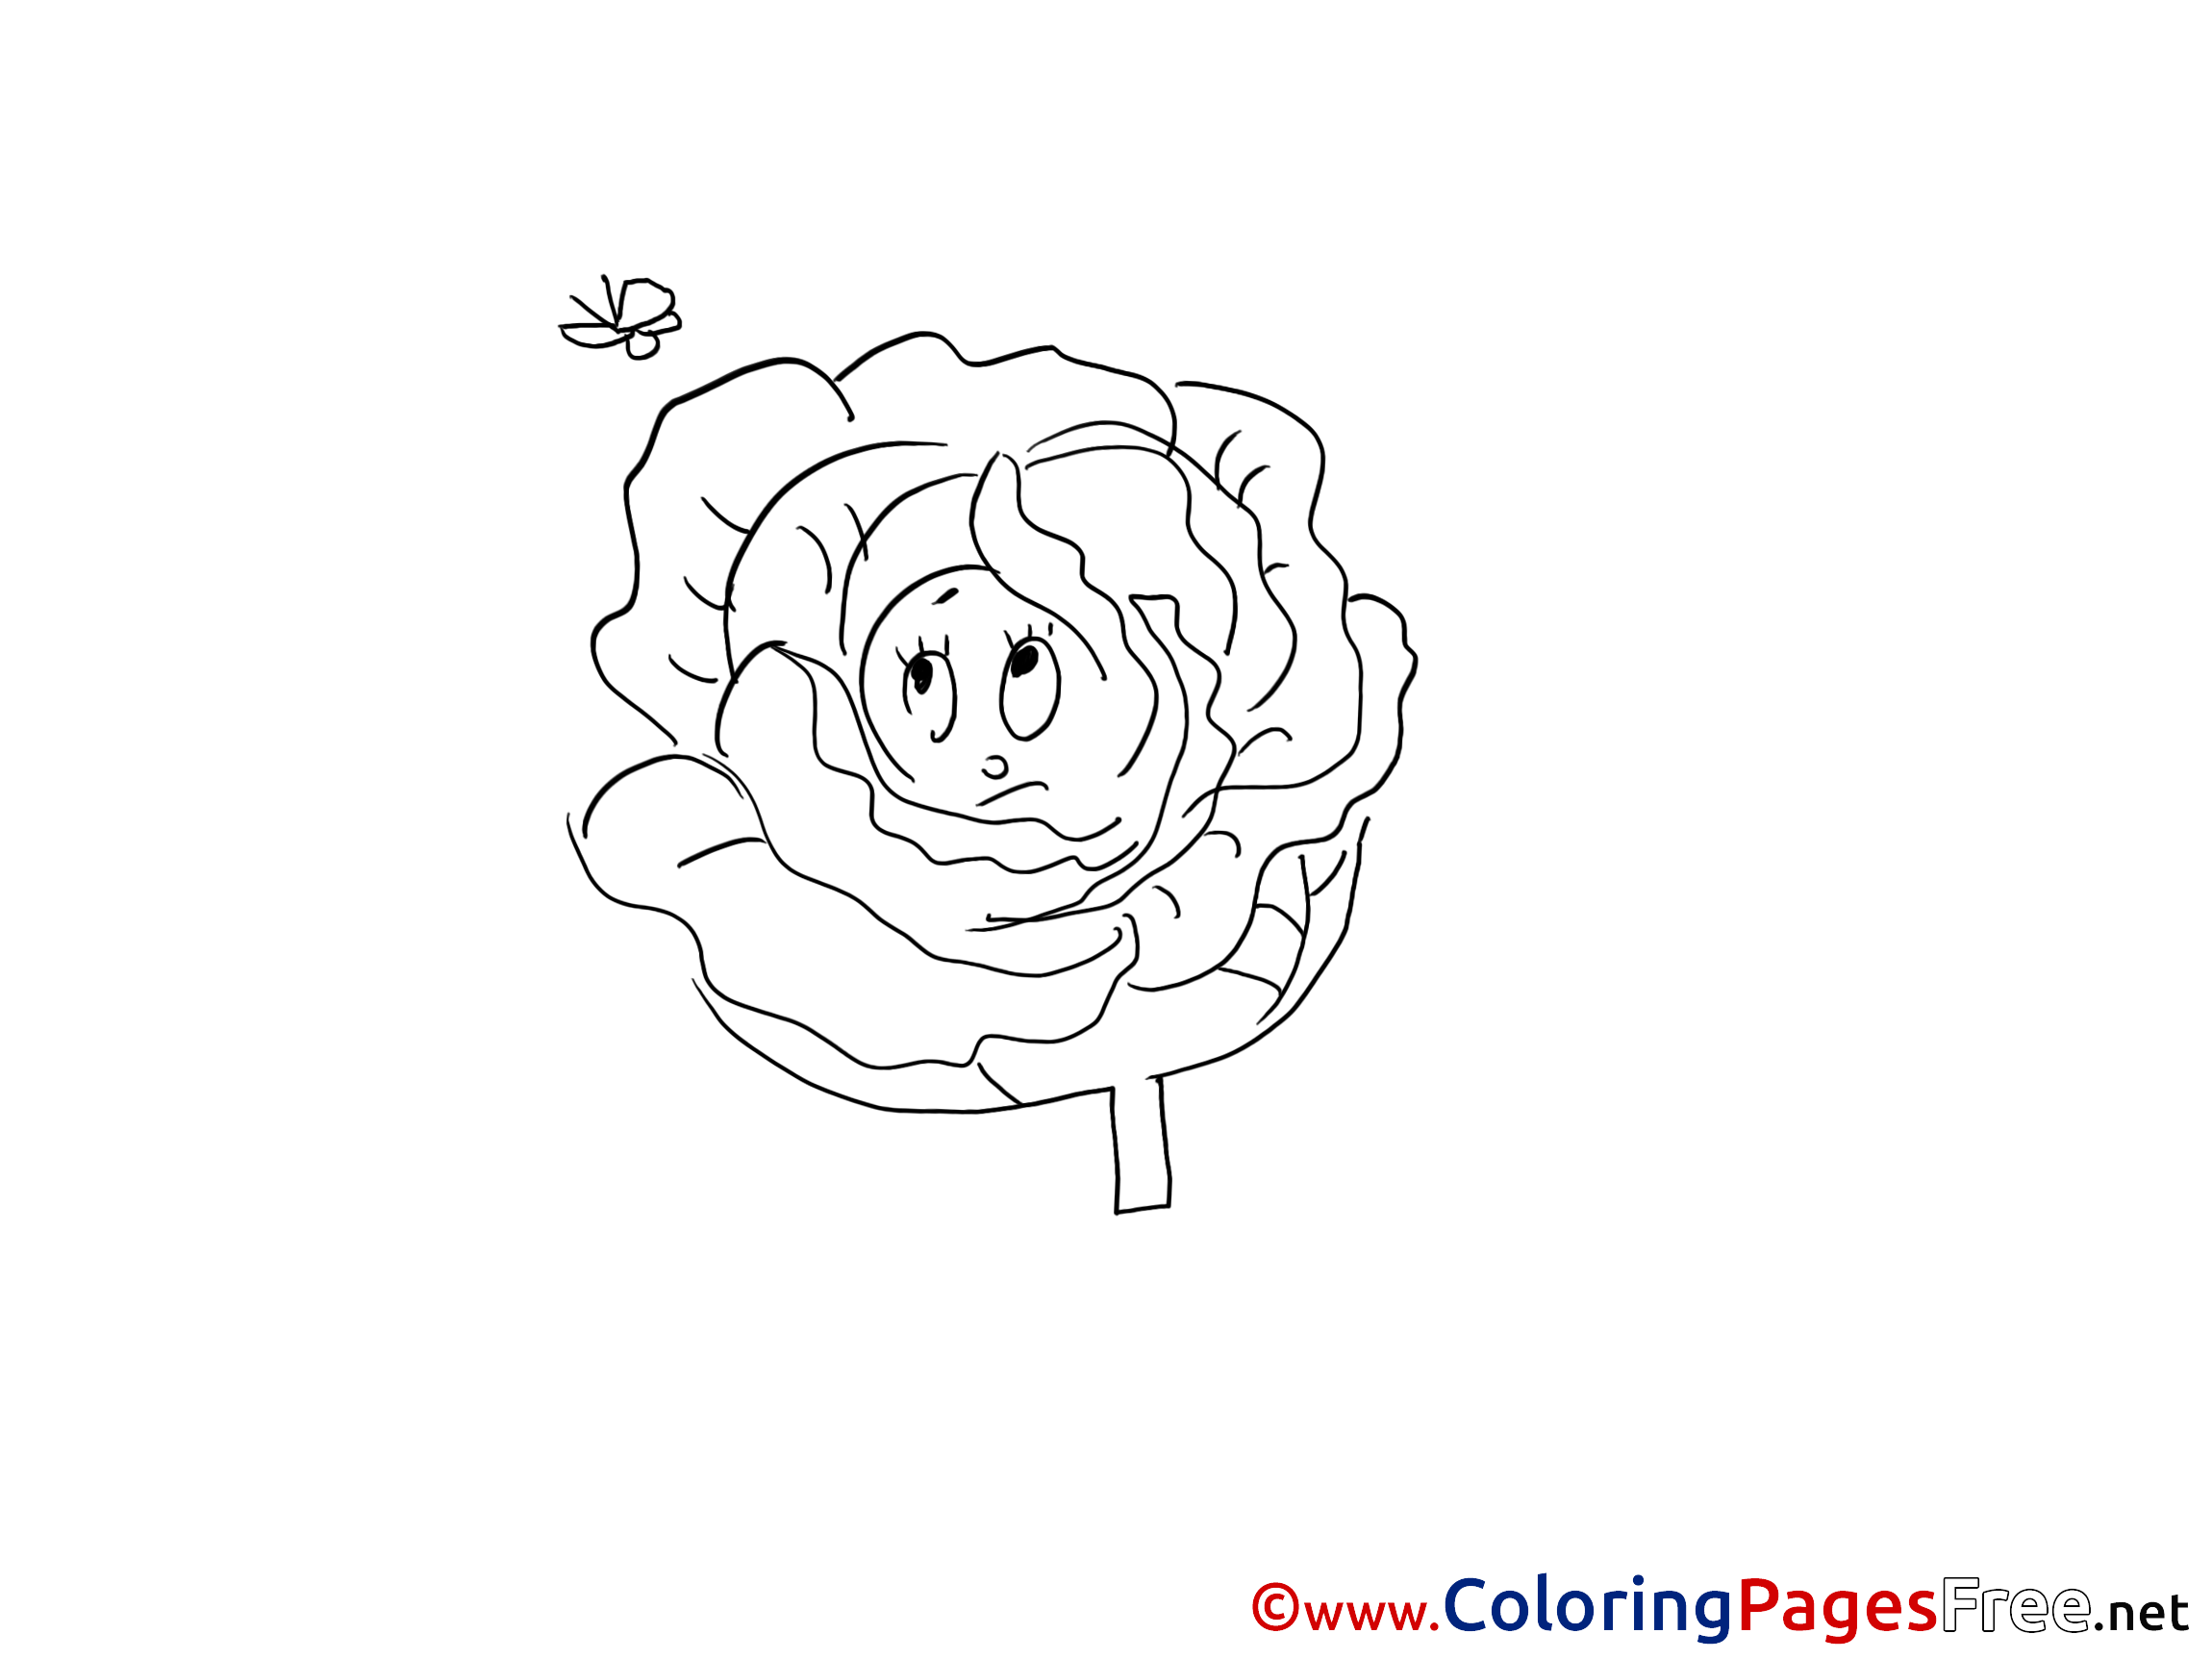 Colouring pages of cabbage - Colouring Pages Of Cabbage 53